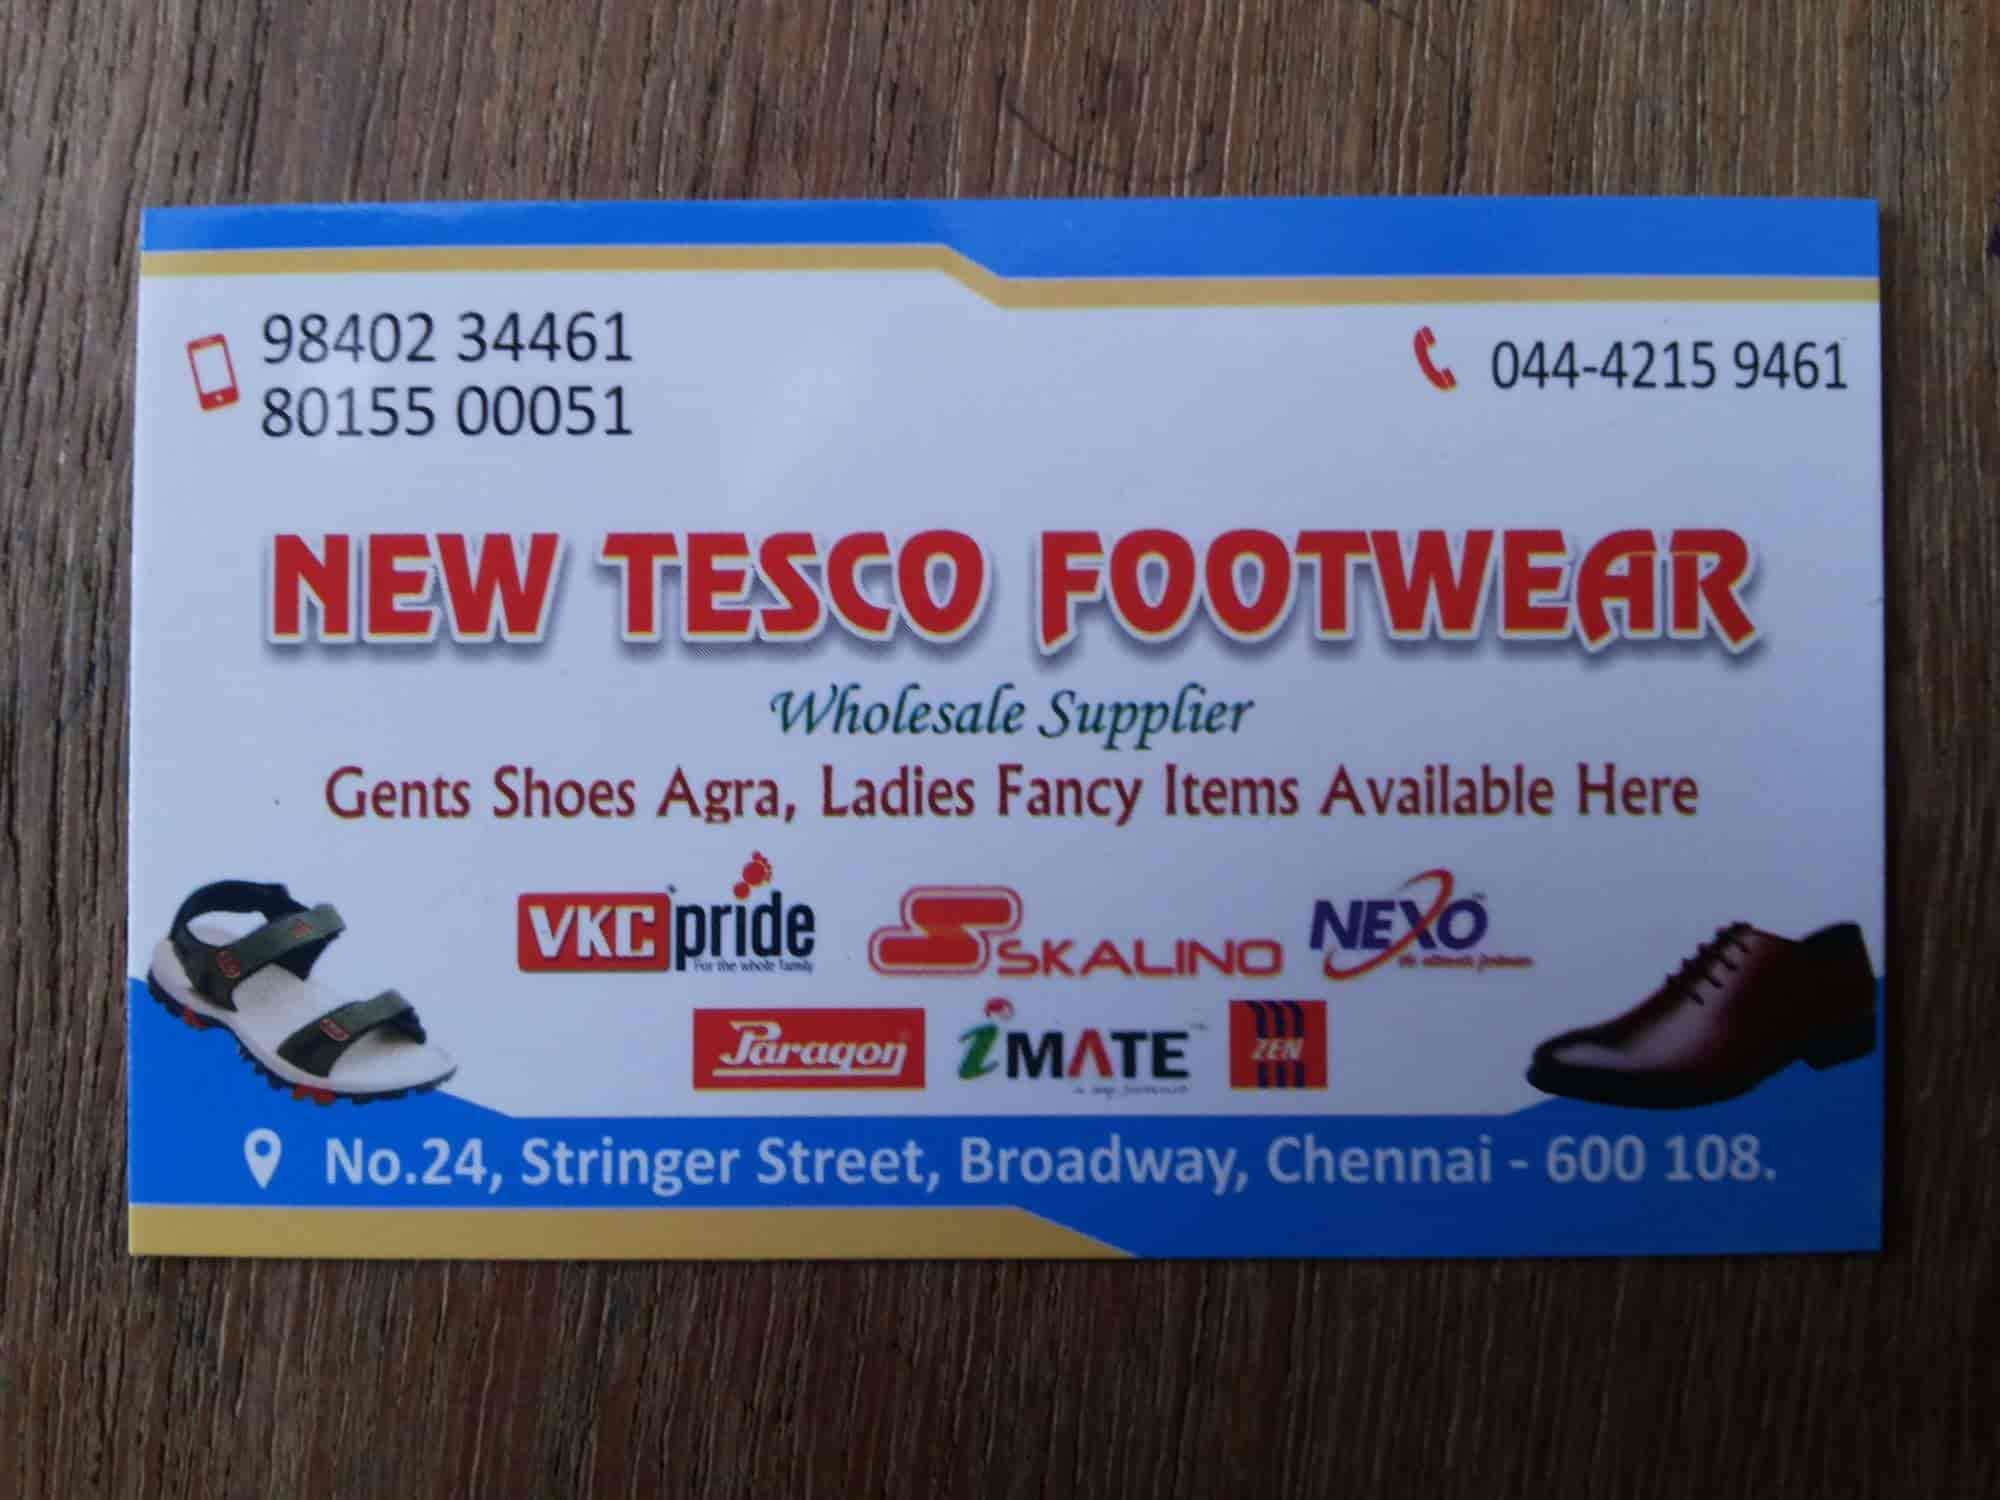 New Tesco Footwear Photos, Broadway, Chennai- Pictures & Images ...